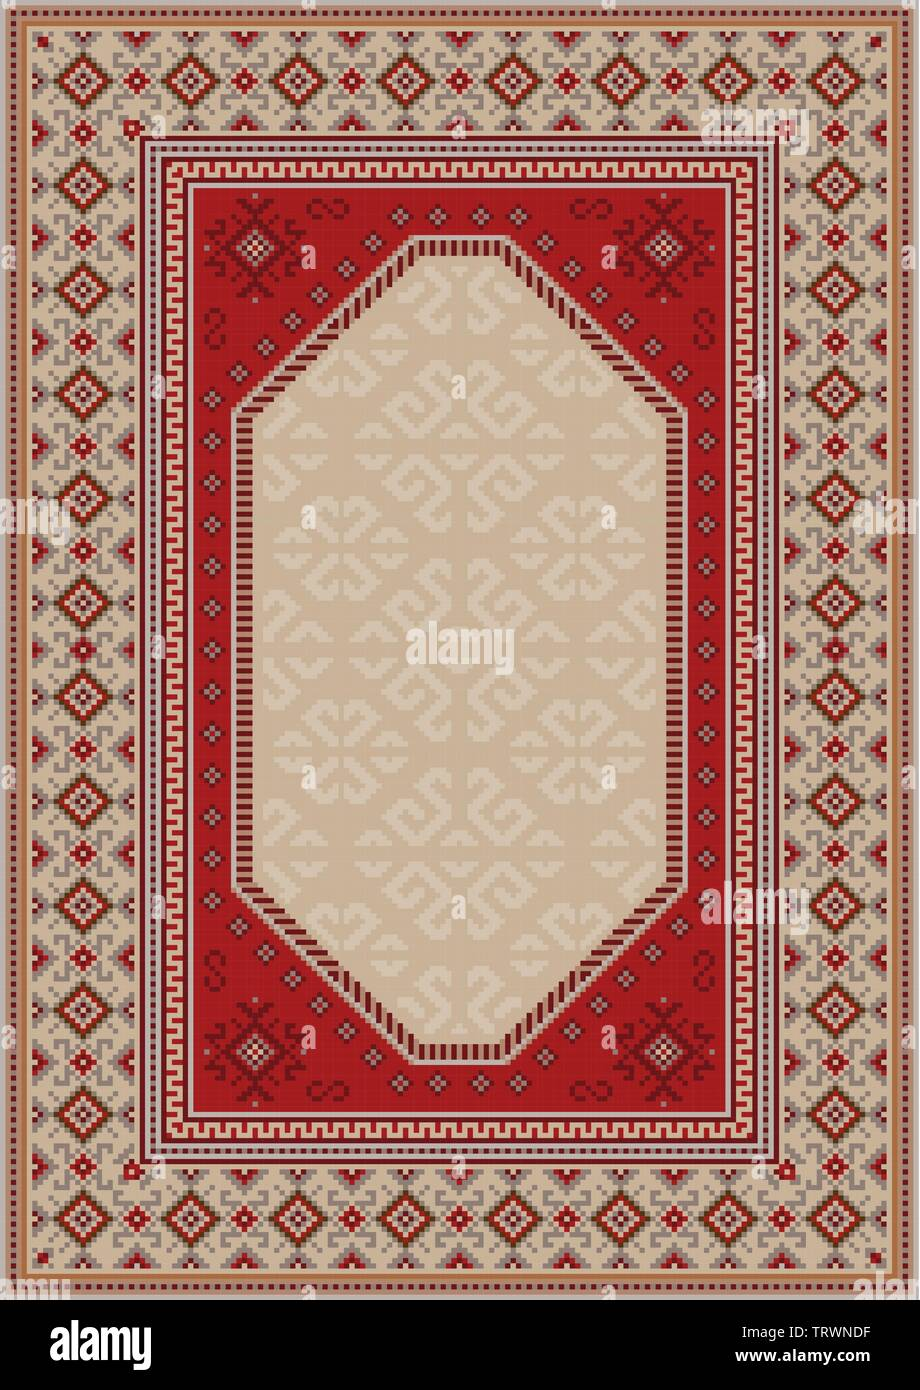 Vintage luxury oriental carpet in beige tones with patterns of red, gray, and burgundy color - Stock Image